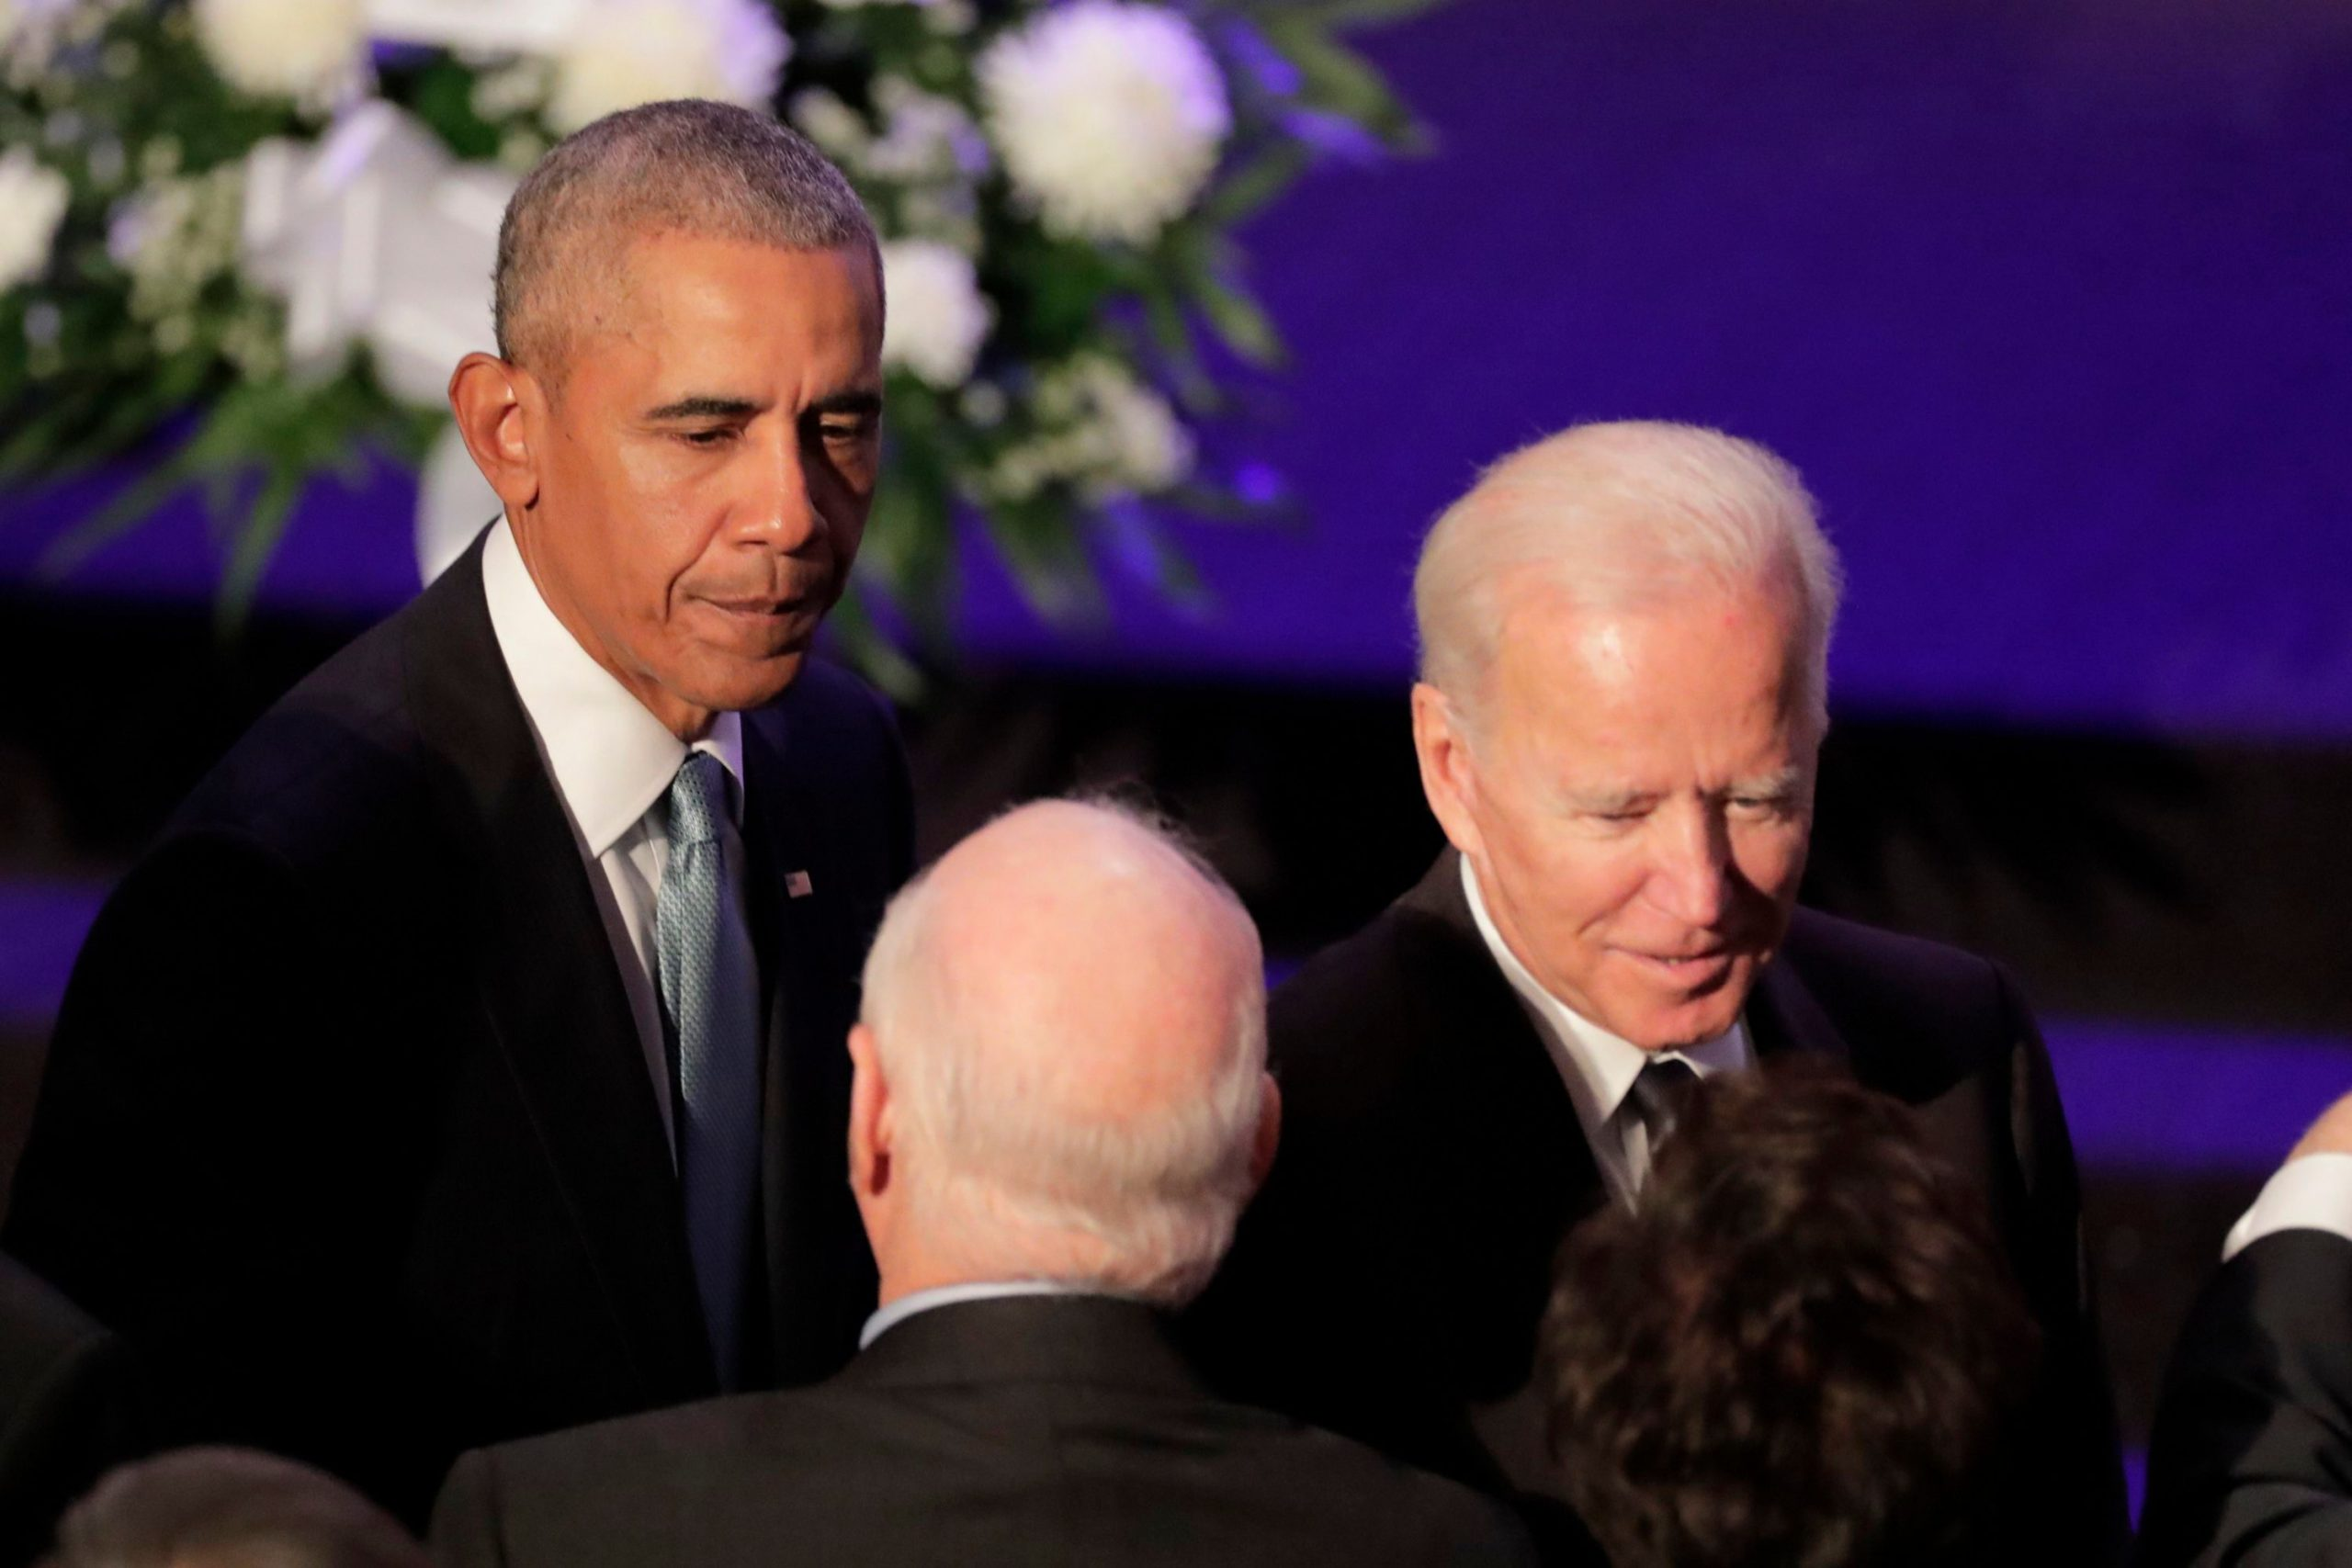 Barack Obama to Host Drive-in Rally to Support Joe Biden in Philly on Wednesday